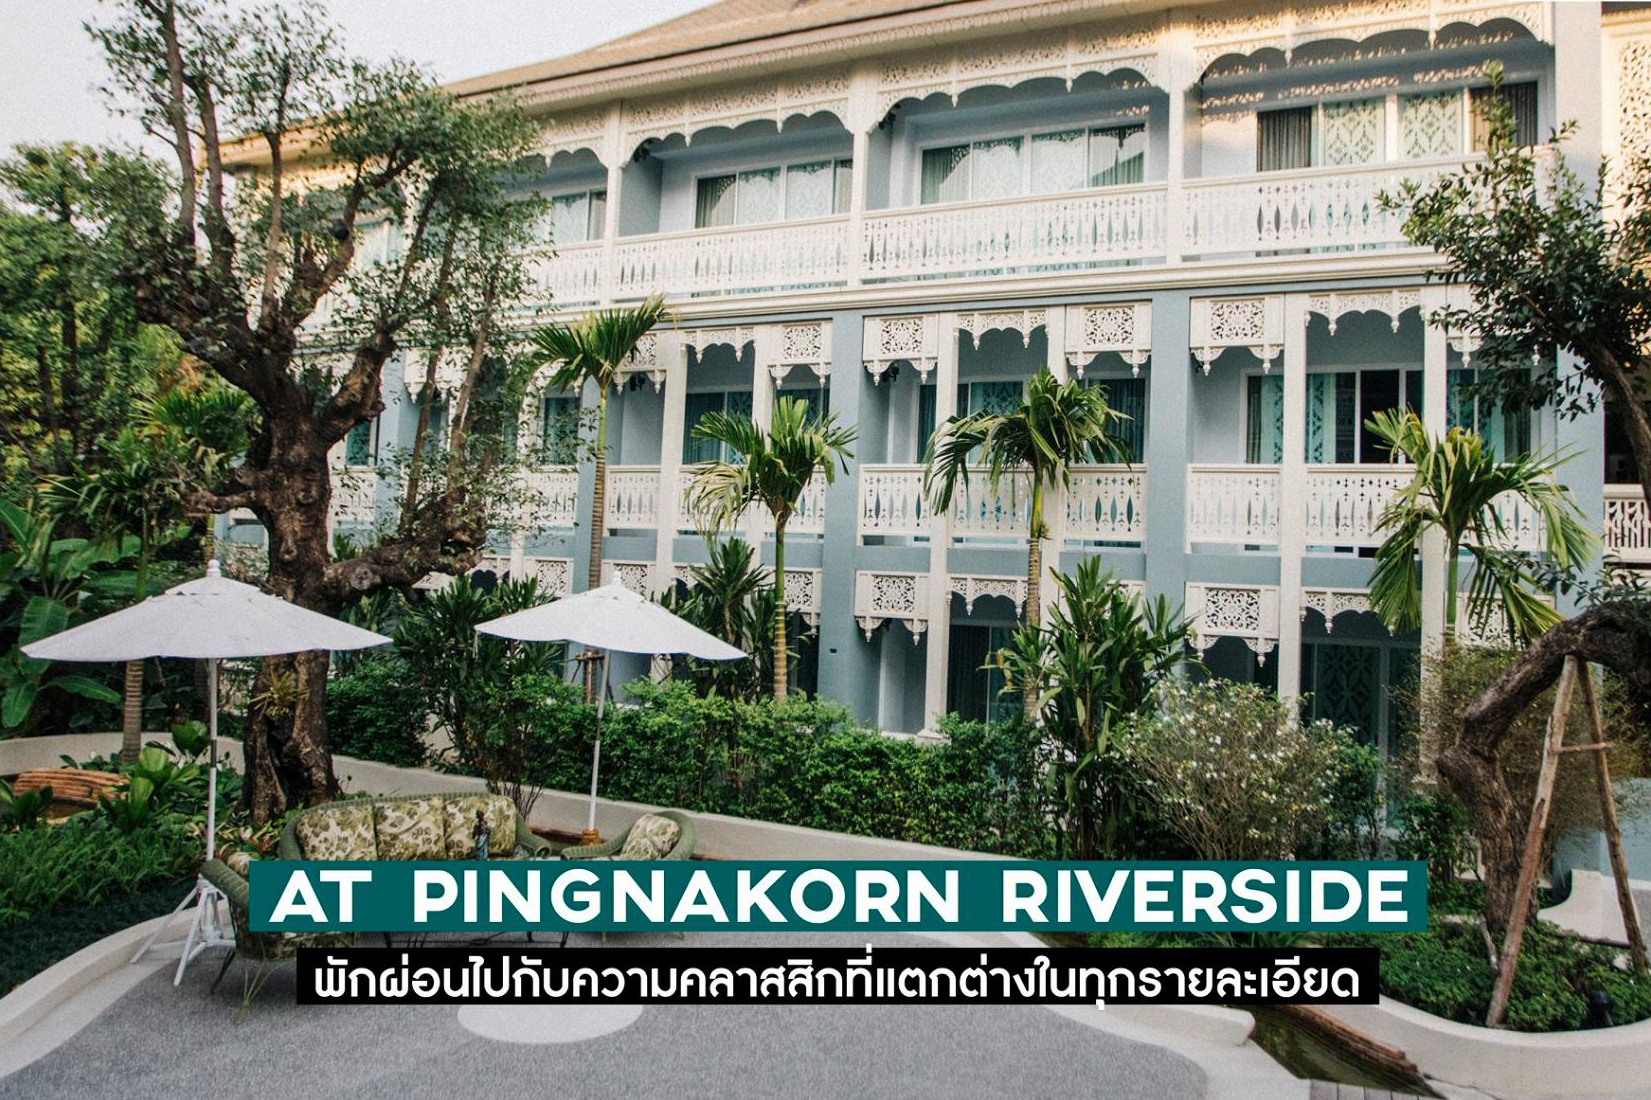 At Pingnakorn Riverside